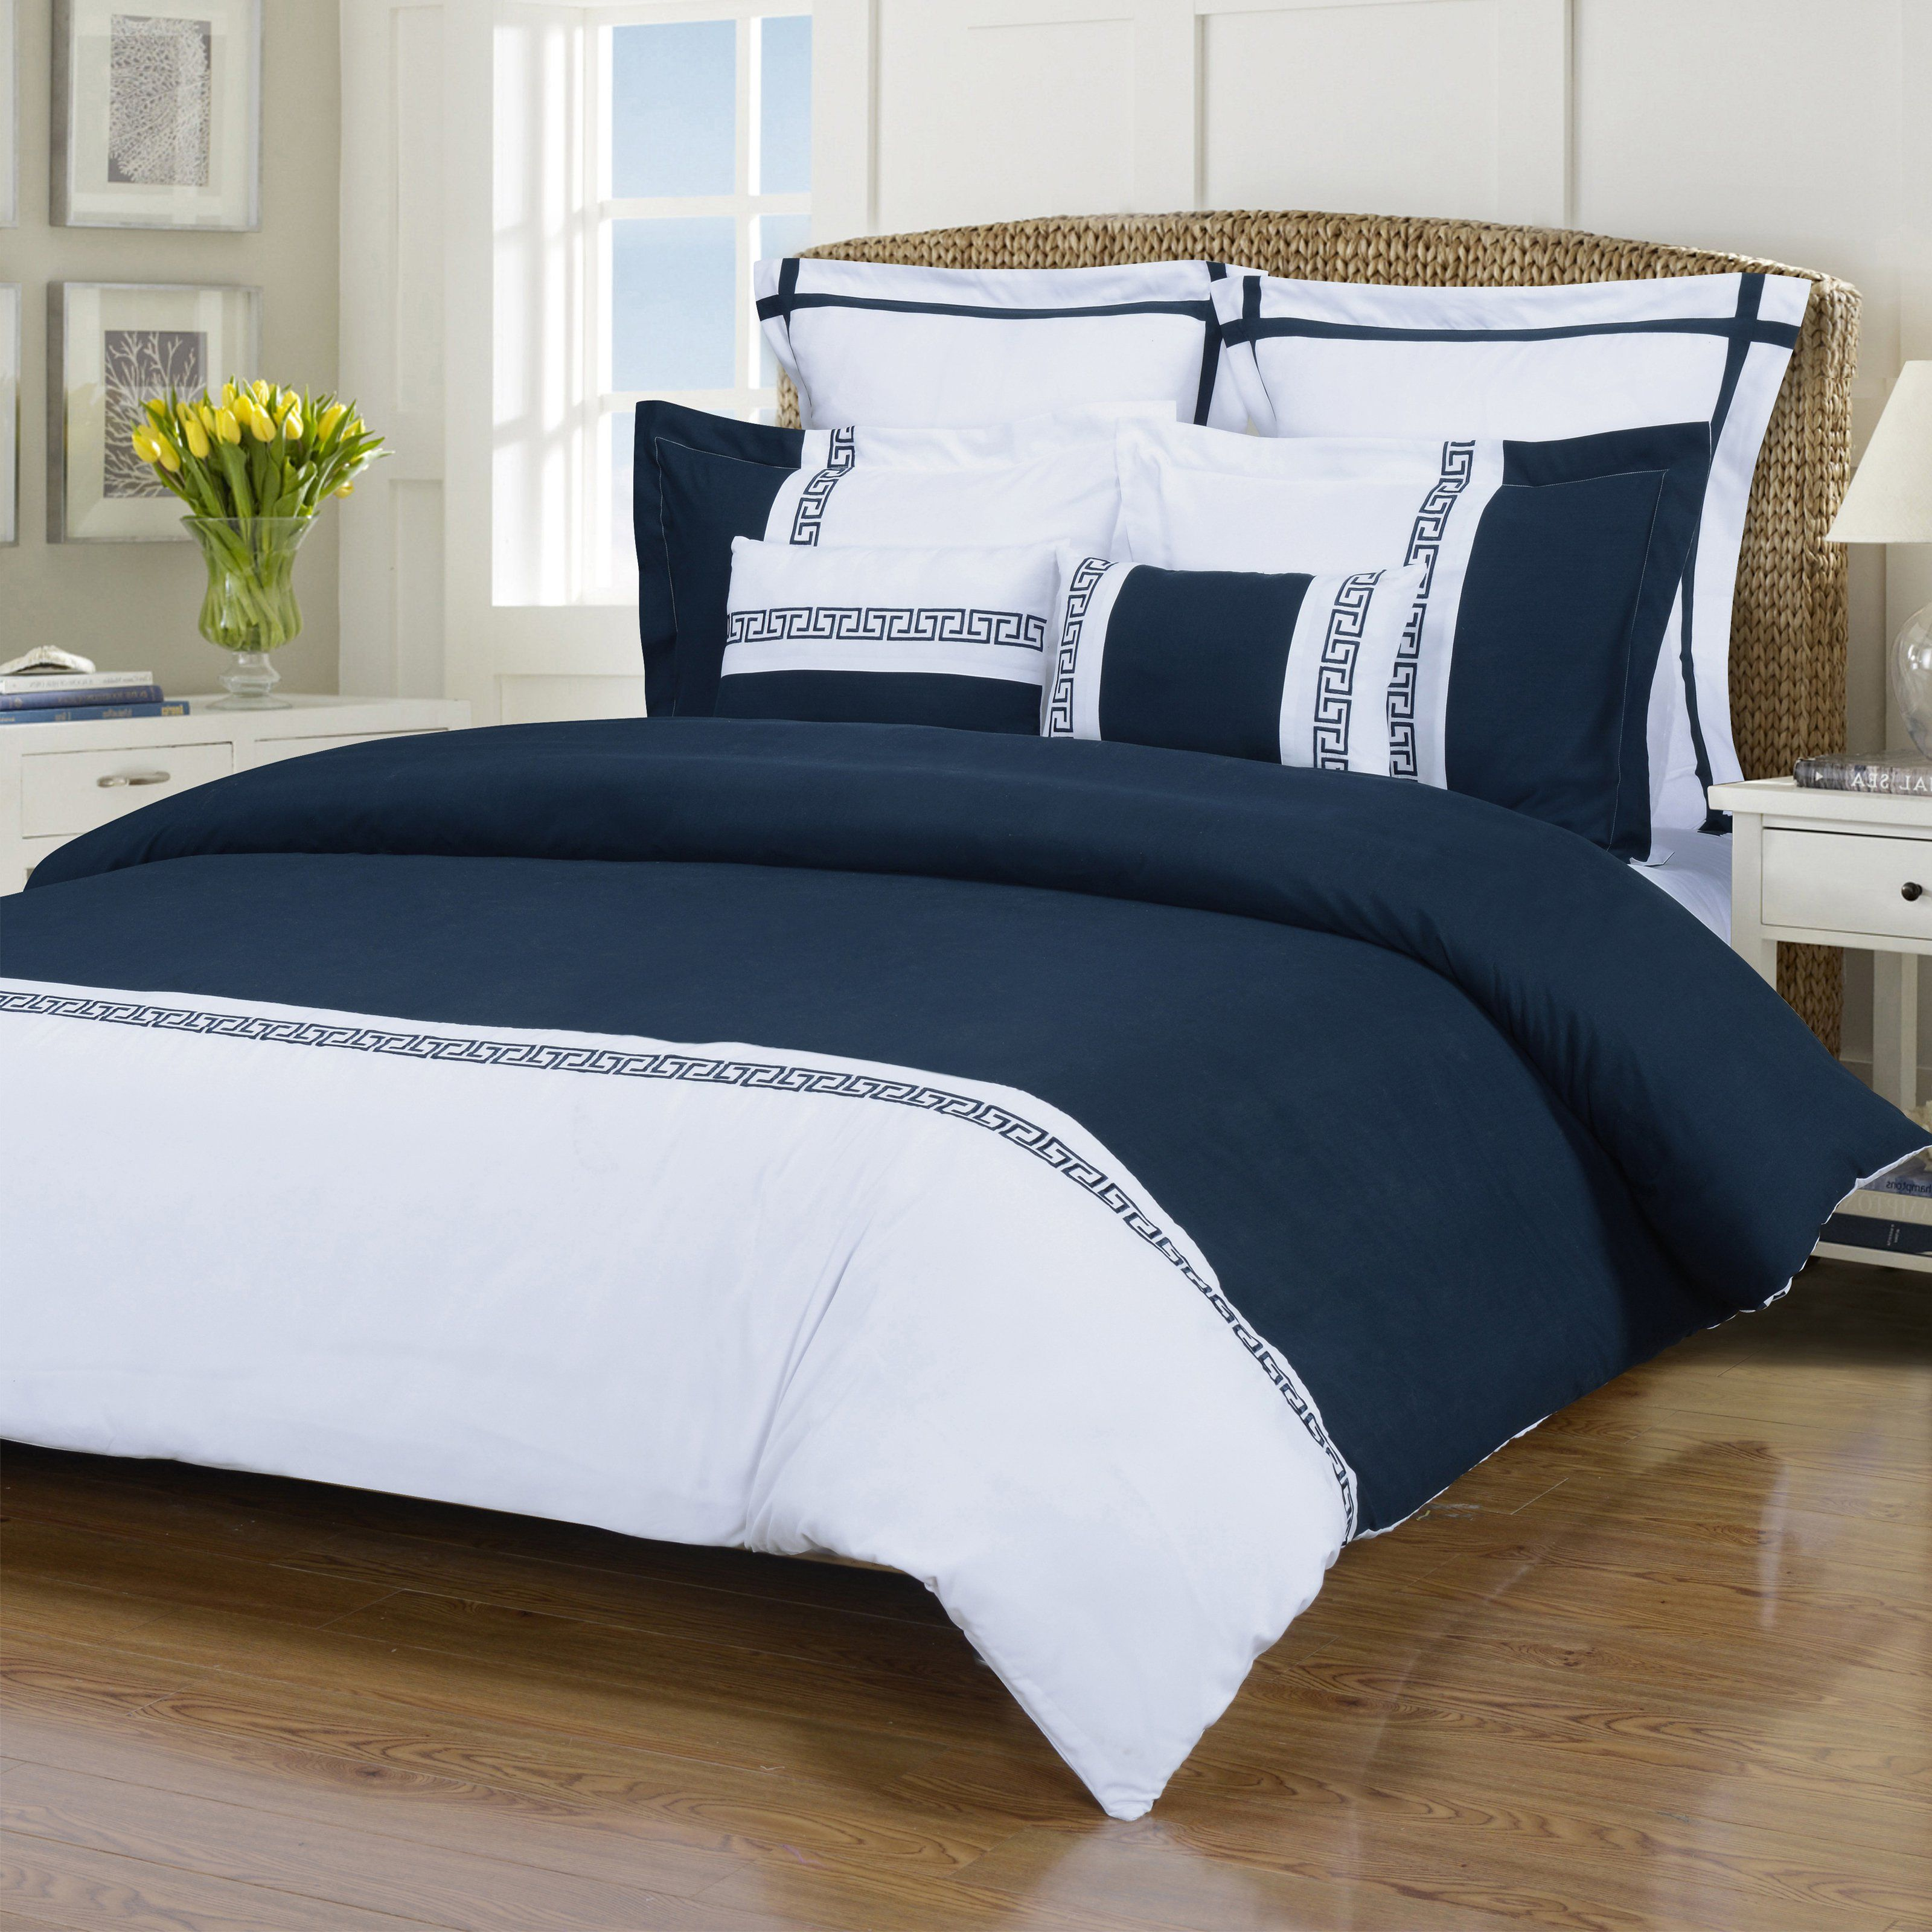 cal beige duvet aweinspiring home on french luxury uk sets stock garden zq mind set blue plus barn target c cover veranotickingstripe stripe house camouflage railroad west chinoiserie navy california allen shams king pristine phantasy pottery bedding ticking ties and verano ethan point red sheet ikea dena